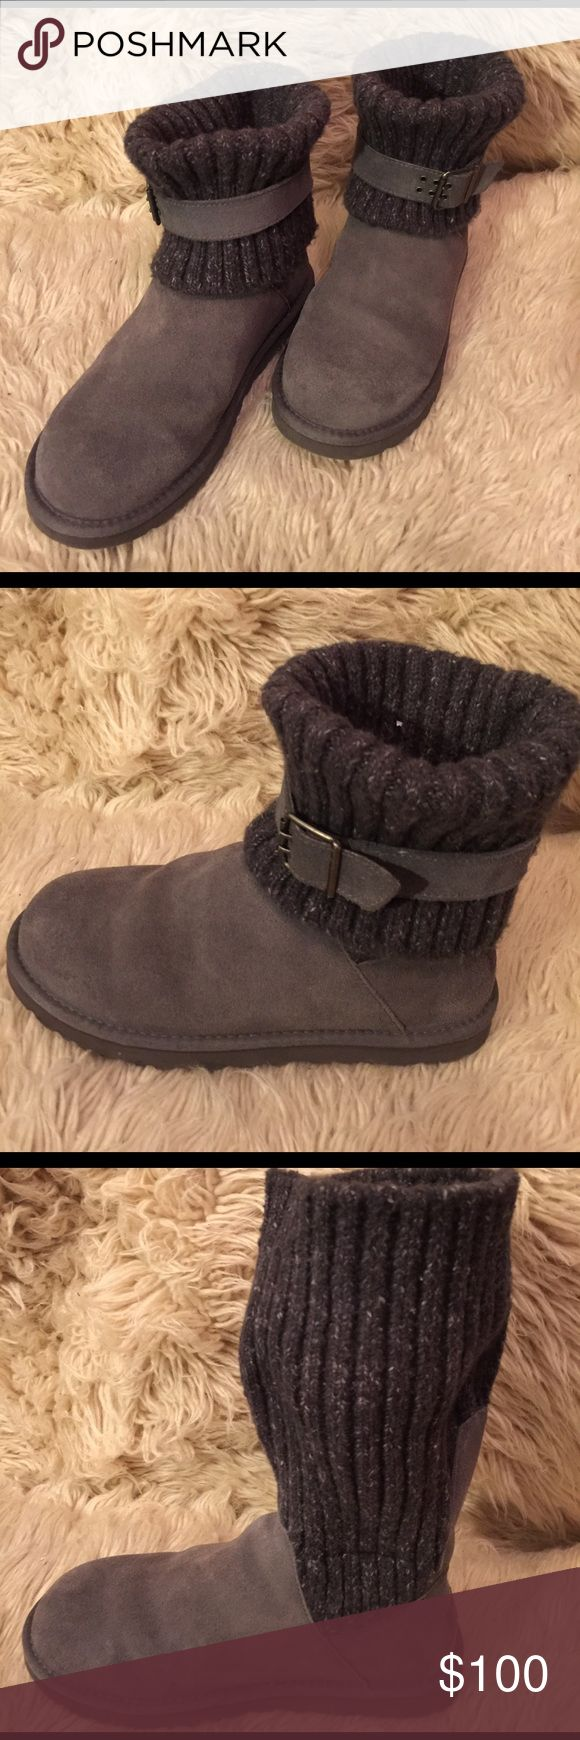 Grey UGG Women's Cambridge Boots, size 9 Grey UGG Women's Cambridge Boots, size 9.  Three way look:  (1) Sweater Folded down with removable strap (2) Sweater folded without removable strap & (3) sweater pulled straight up.  Leather upper.  Really comfortable. UGG Shoes